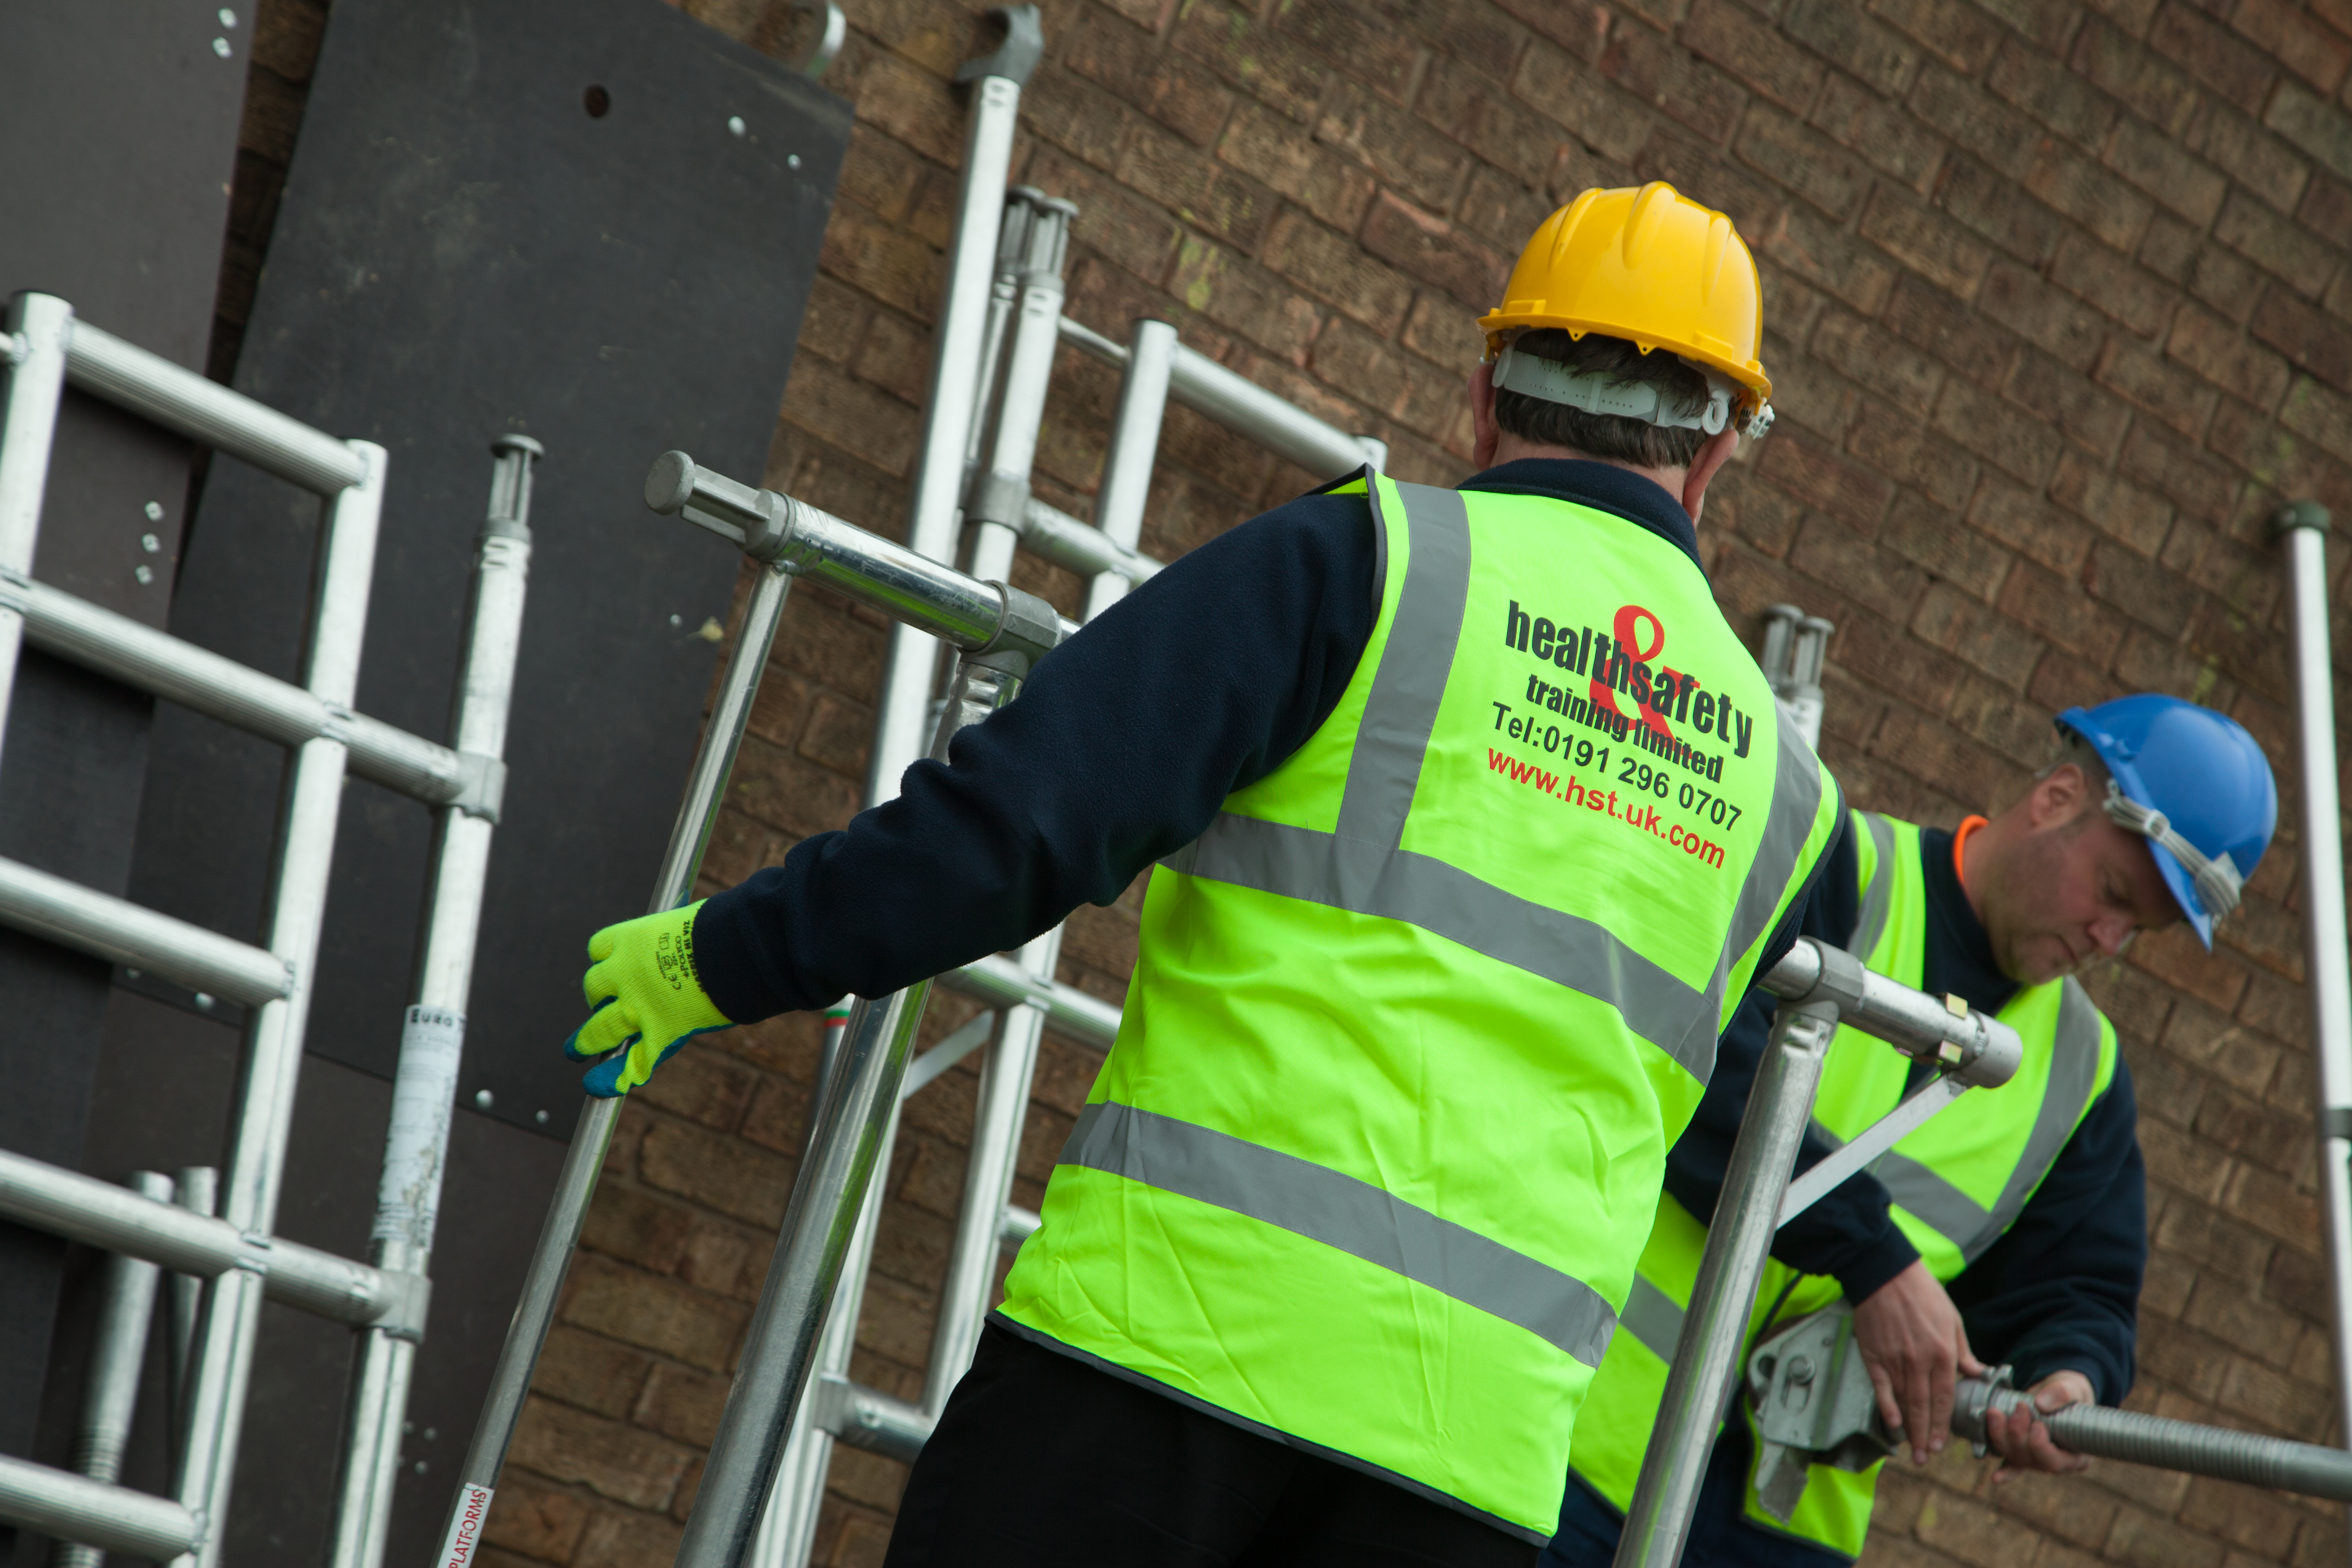 How Safe is Scaffolding? - Health & Safety Training